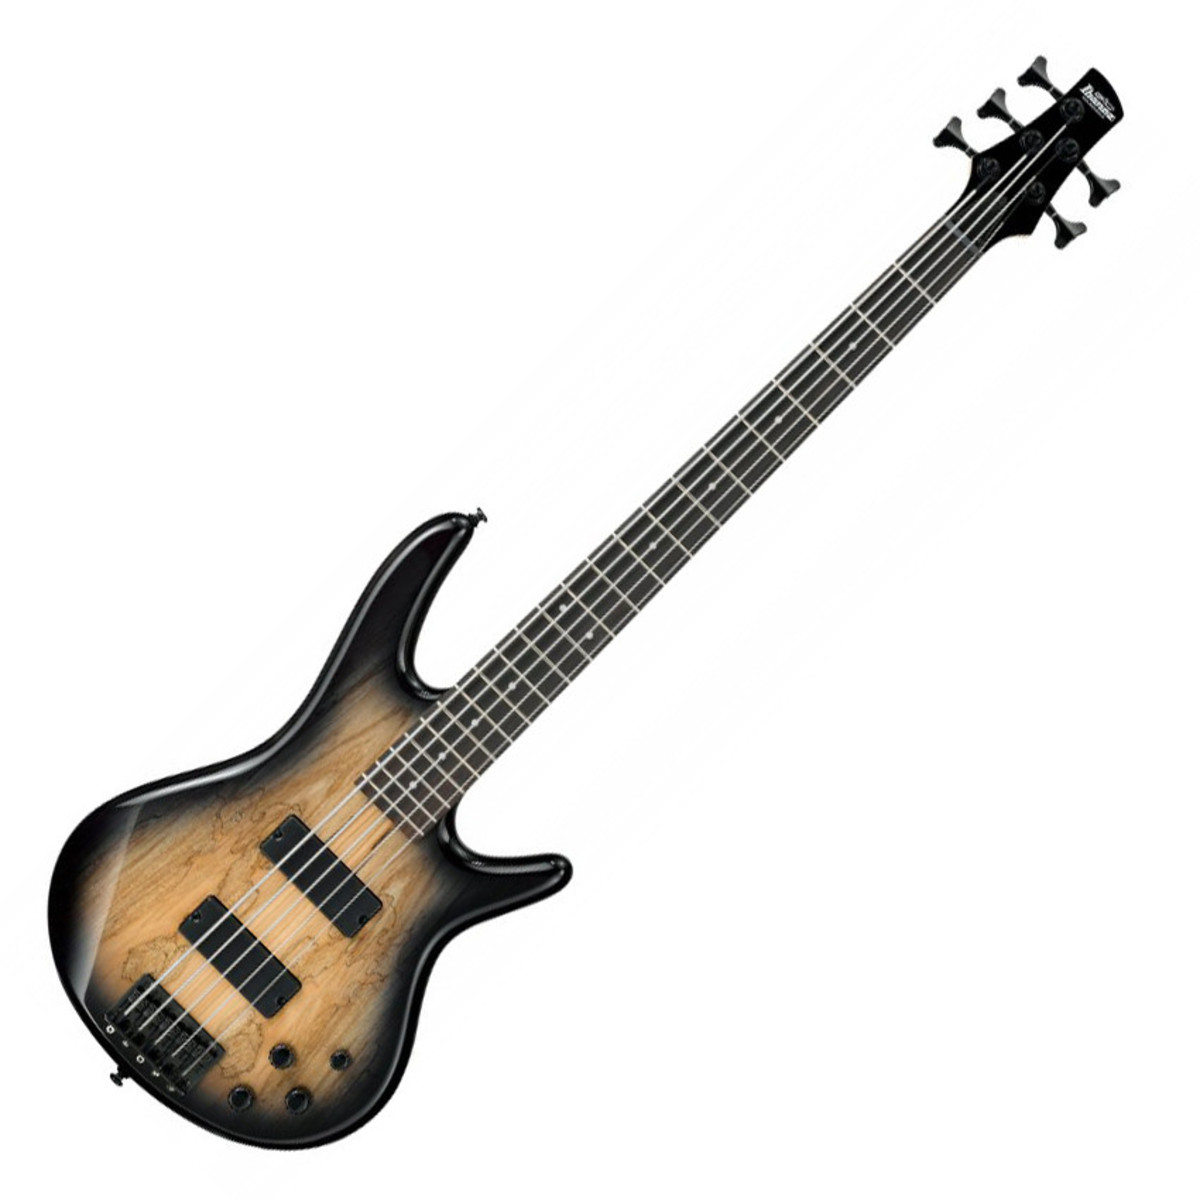 ibanez gio gsr205sm 5 string bass guitar natural grey burst at. Black Bedroom Furniture Sets. Home Design Ideas